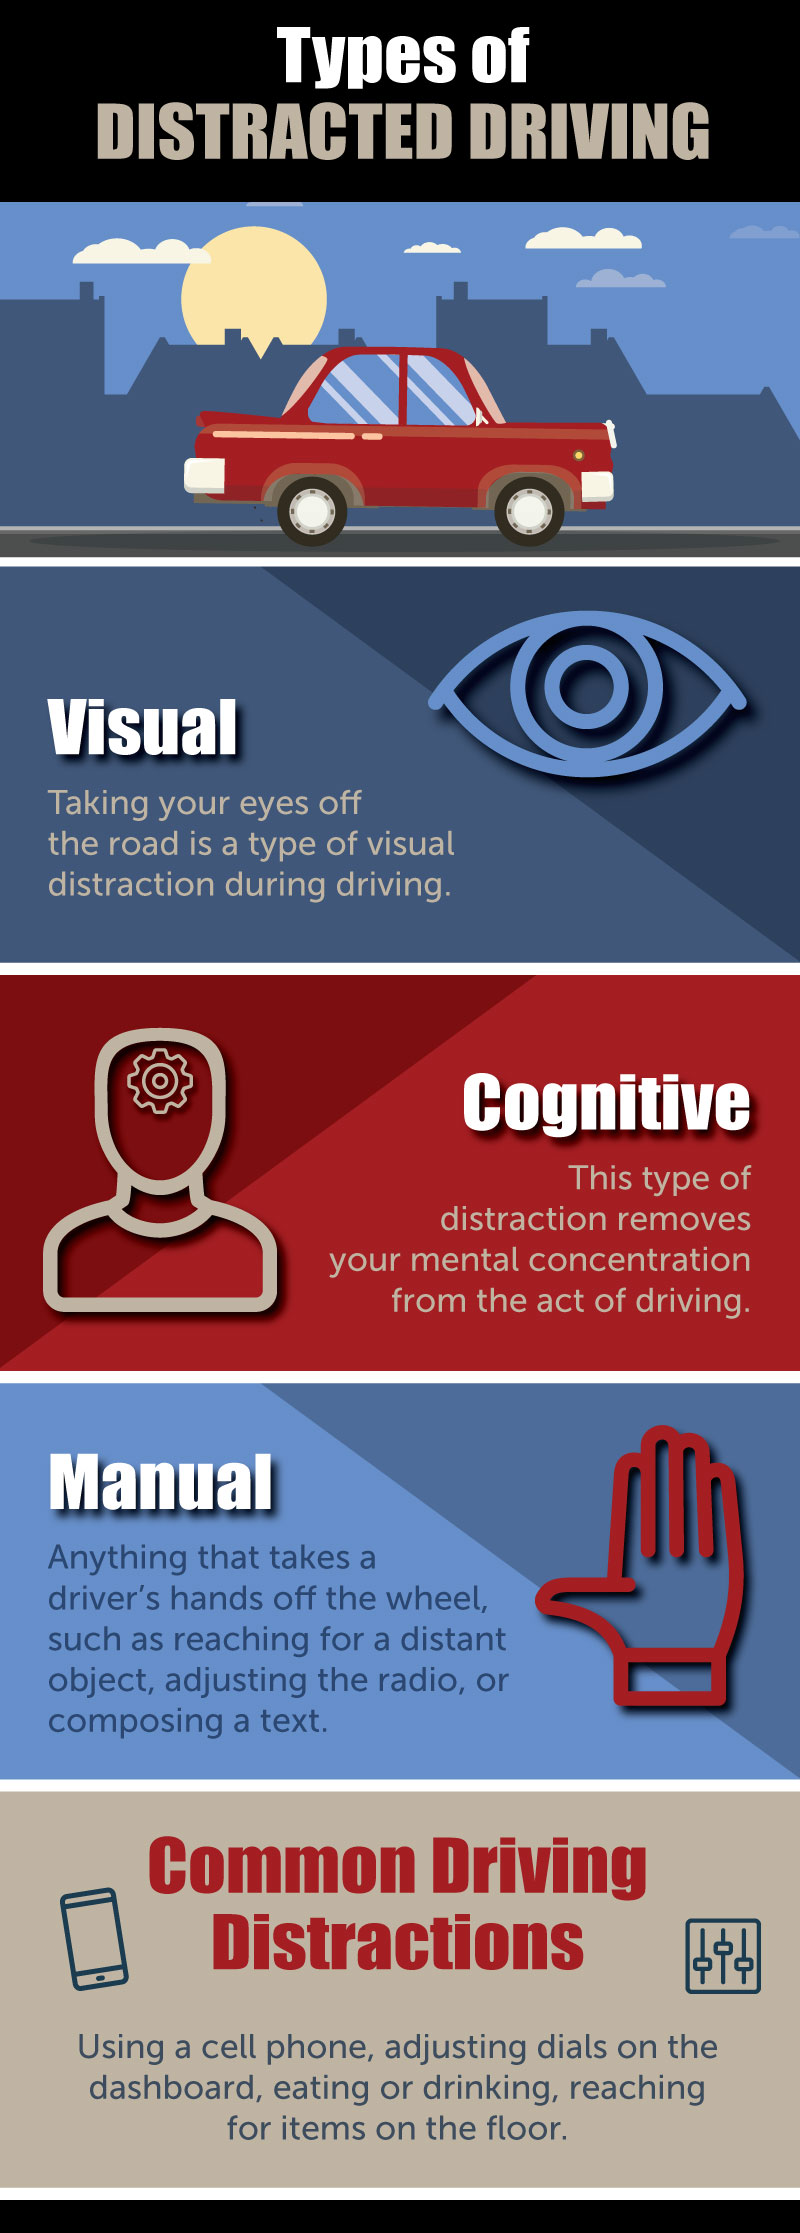 Philadelphia car accident lawyers describe the types of distracted driving